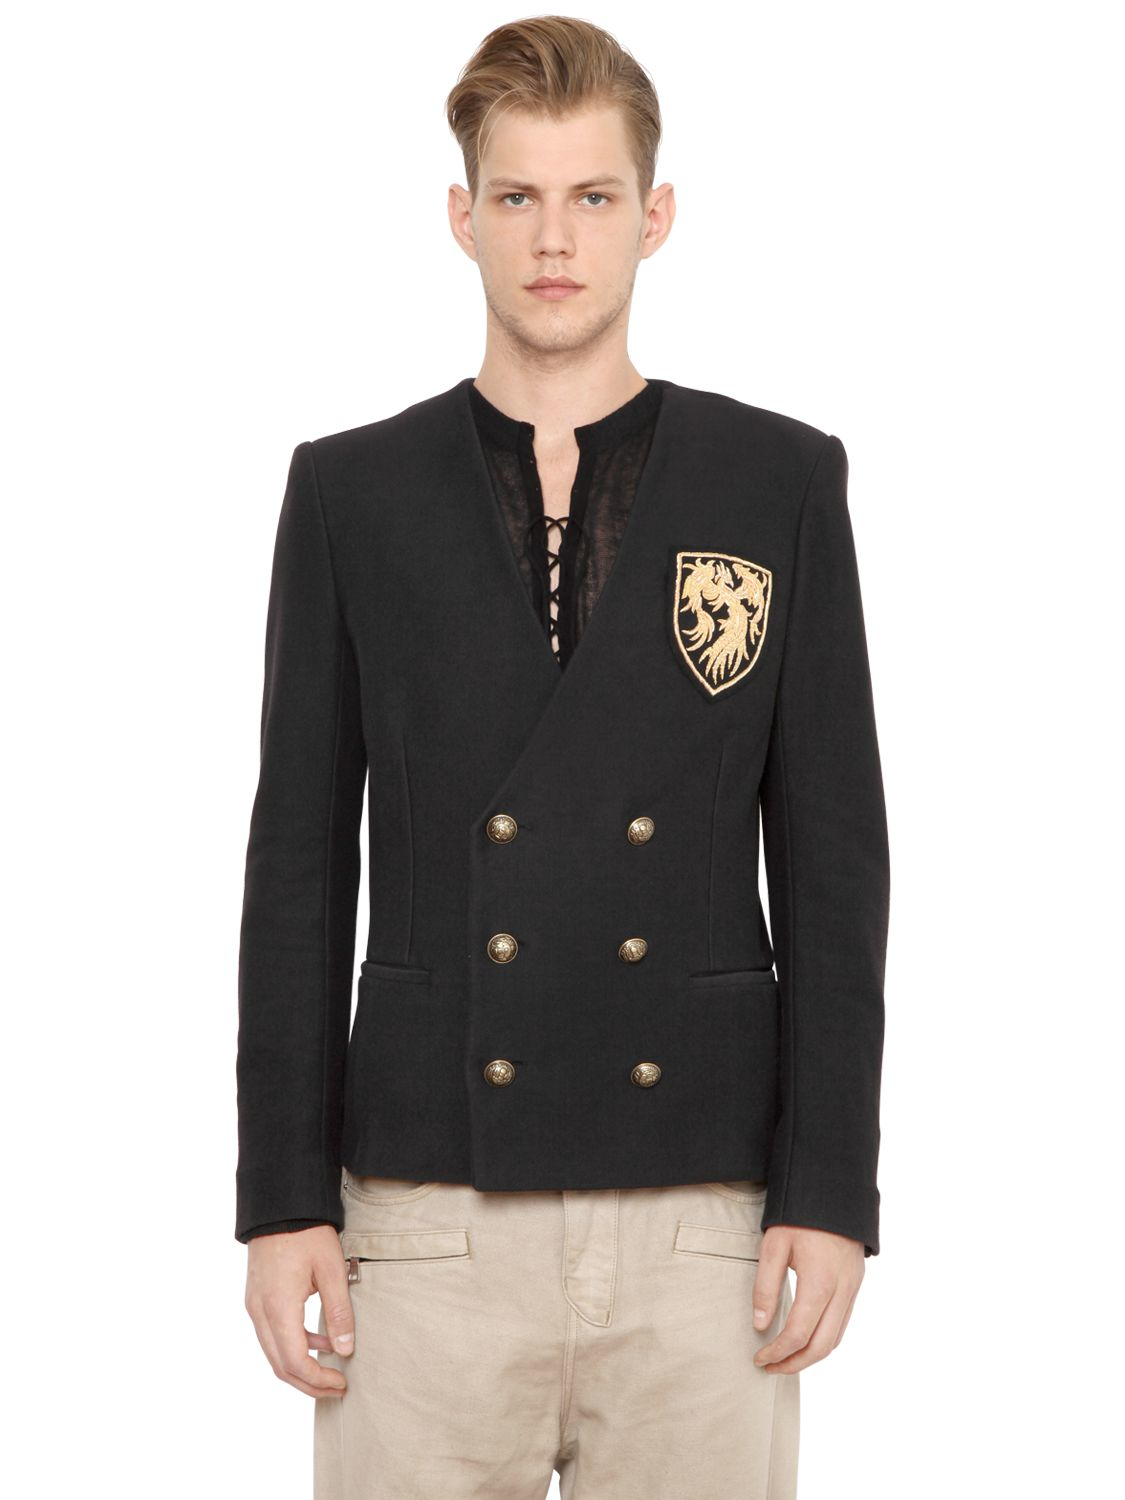 Lyst Balmain Crest Patch On Cotton Jersey Jacket In Black